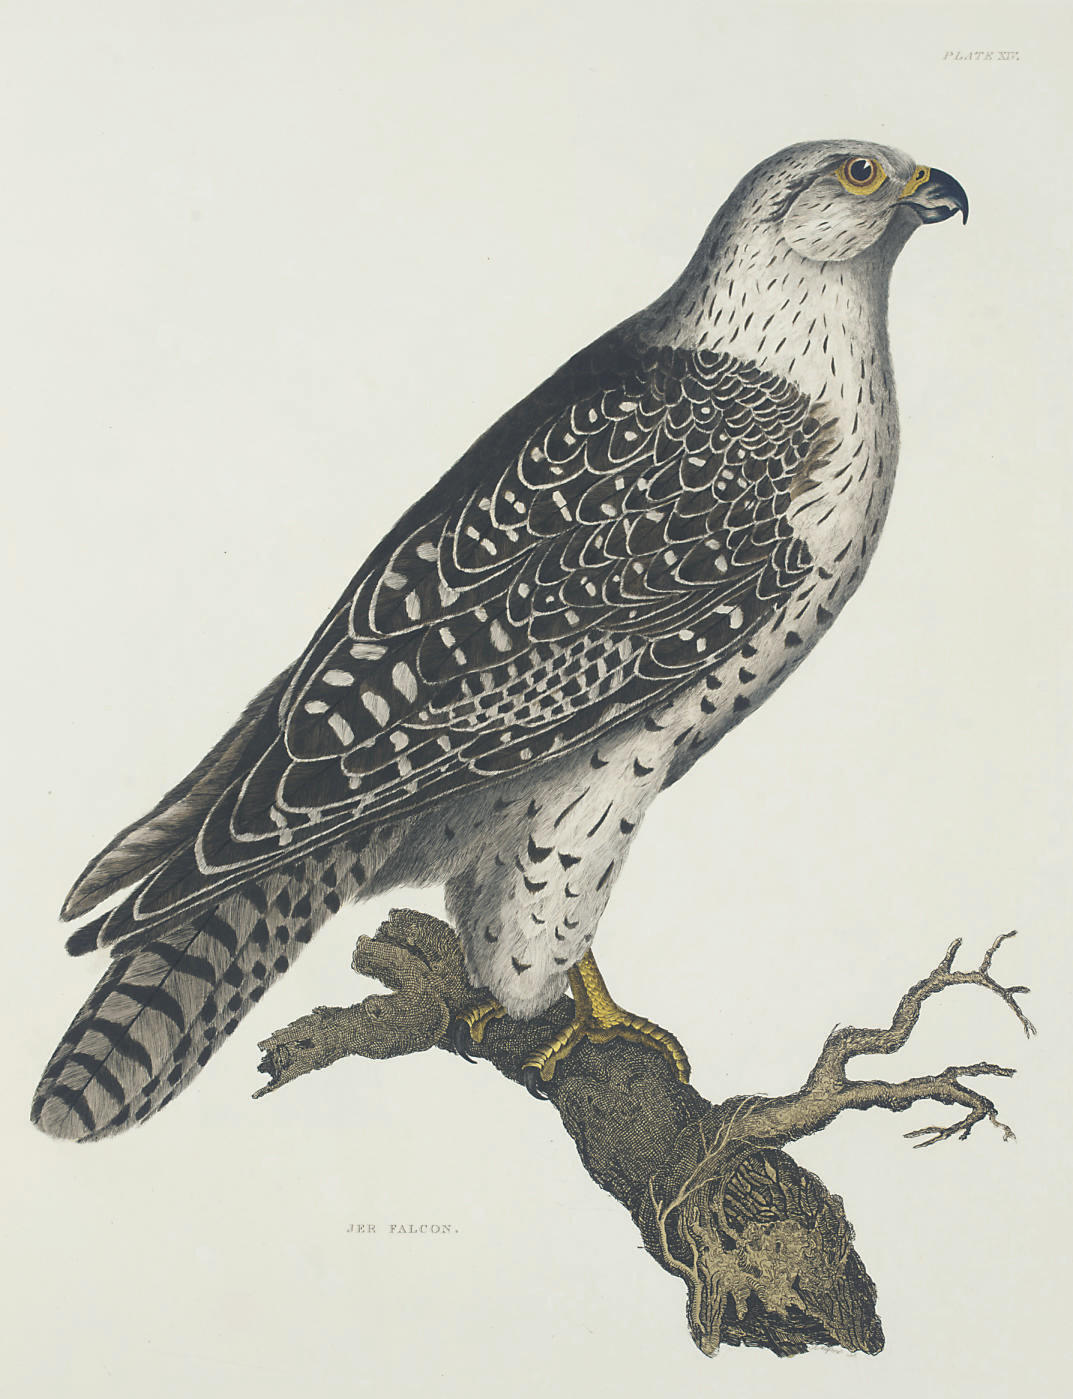 SELBY, Prideaux John (1788-1867). Plates to Selby's Illustrations of British Ornithology. Edinburgh: Archibald Constable & Co. and Hurst, Robinson & Co., [1821-]1834.